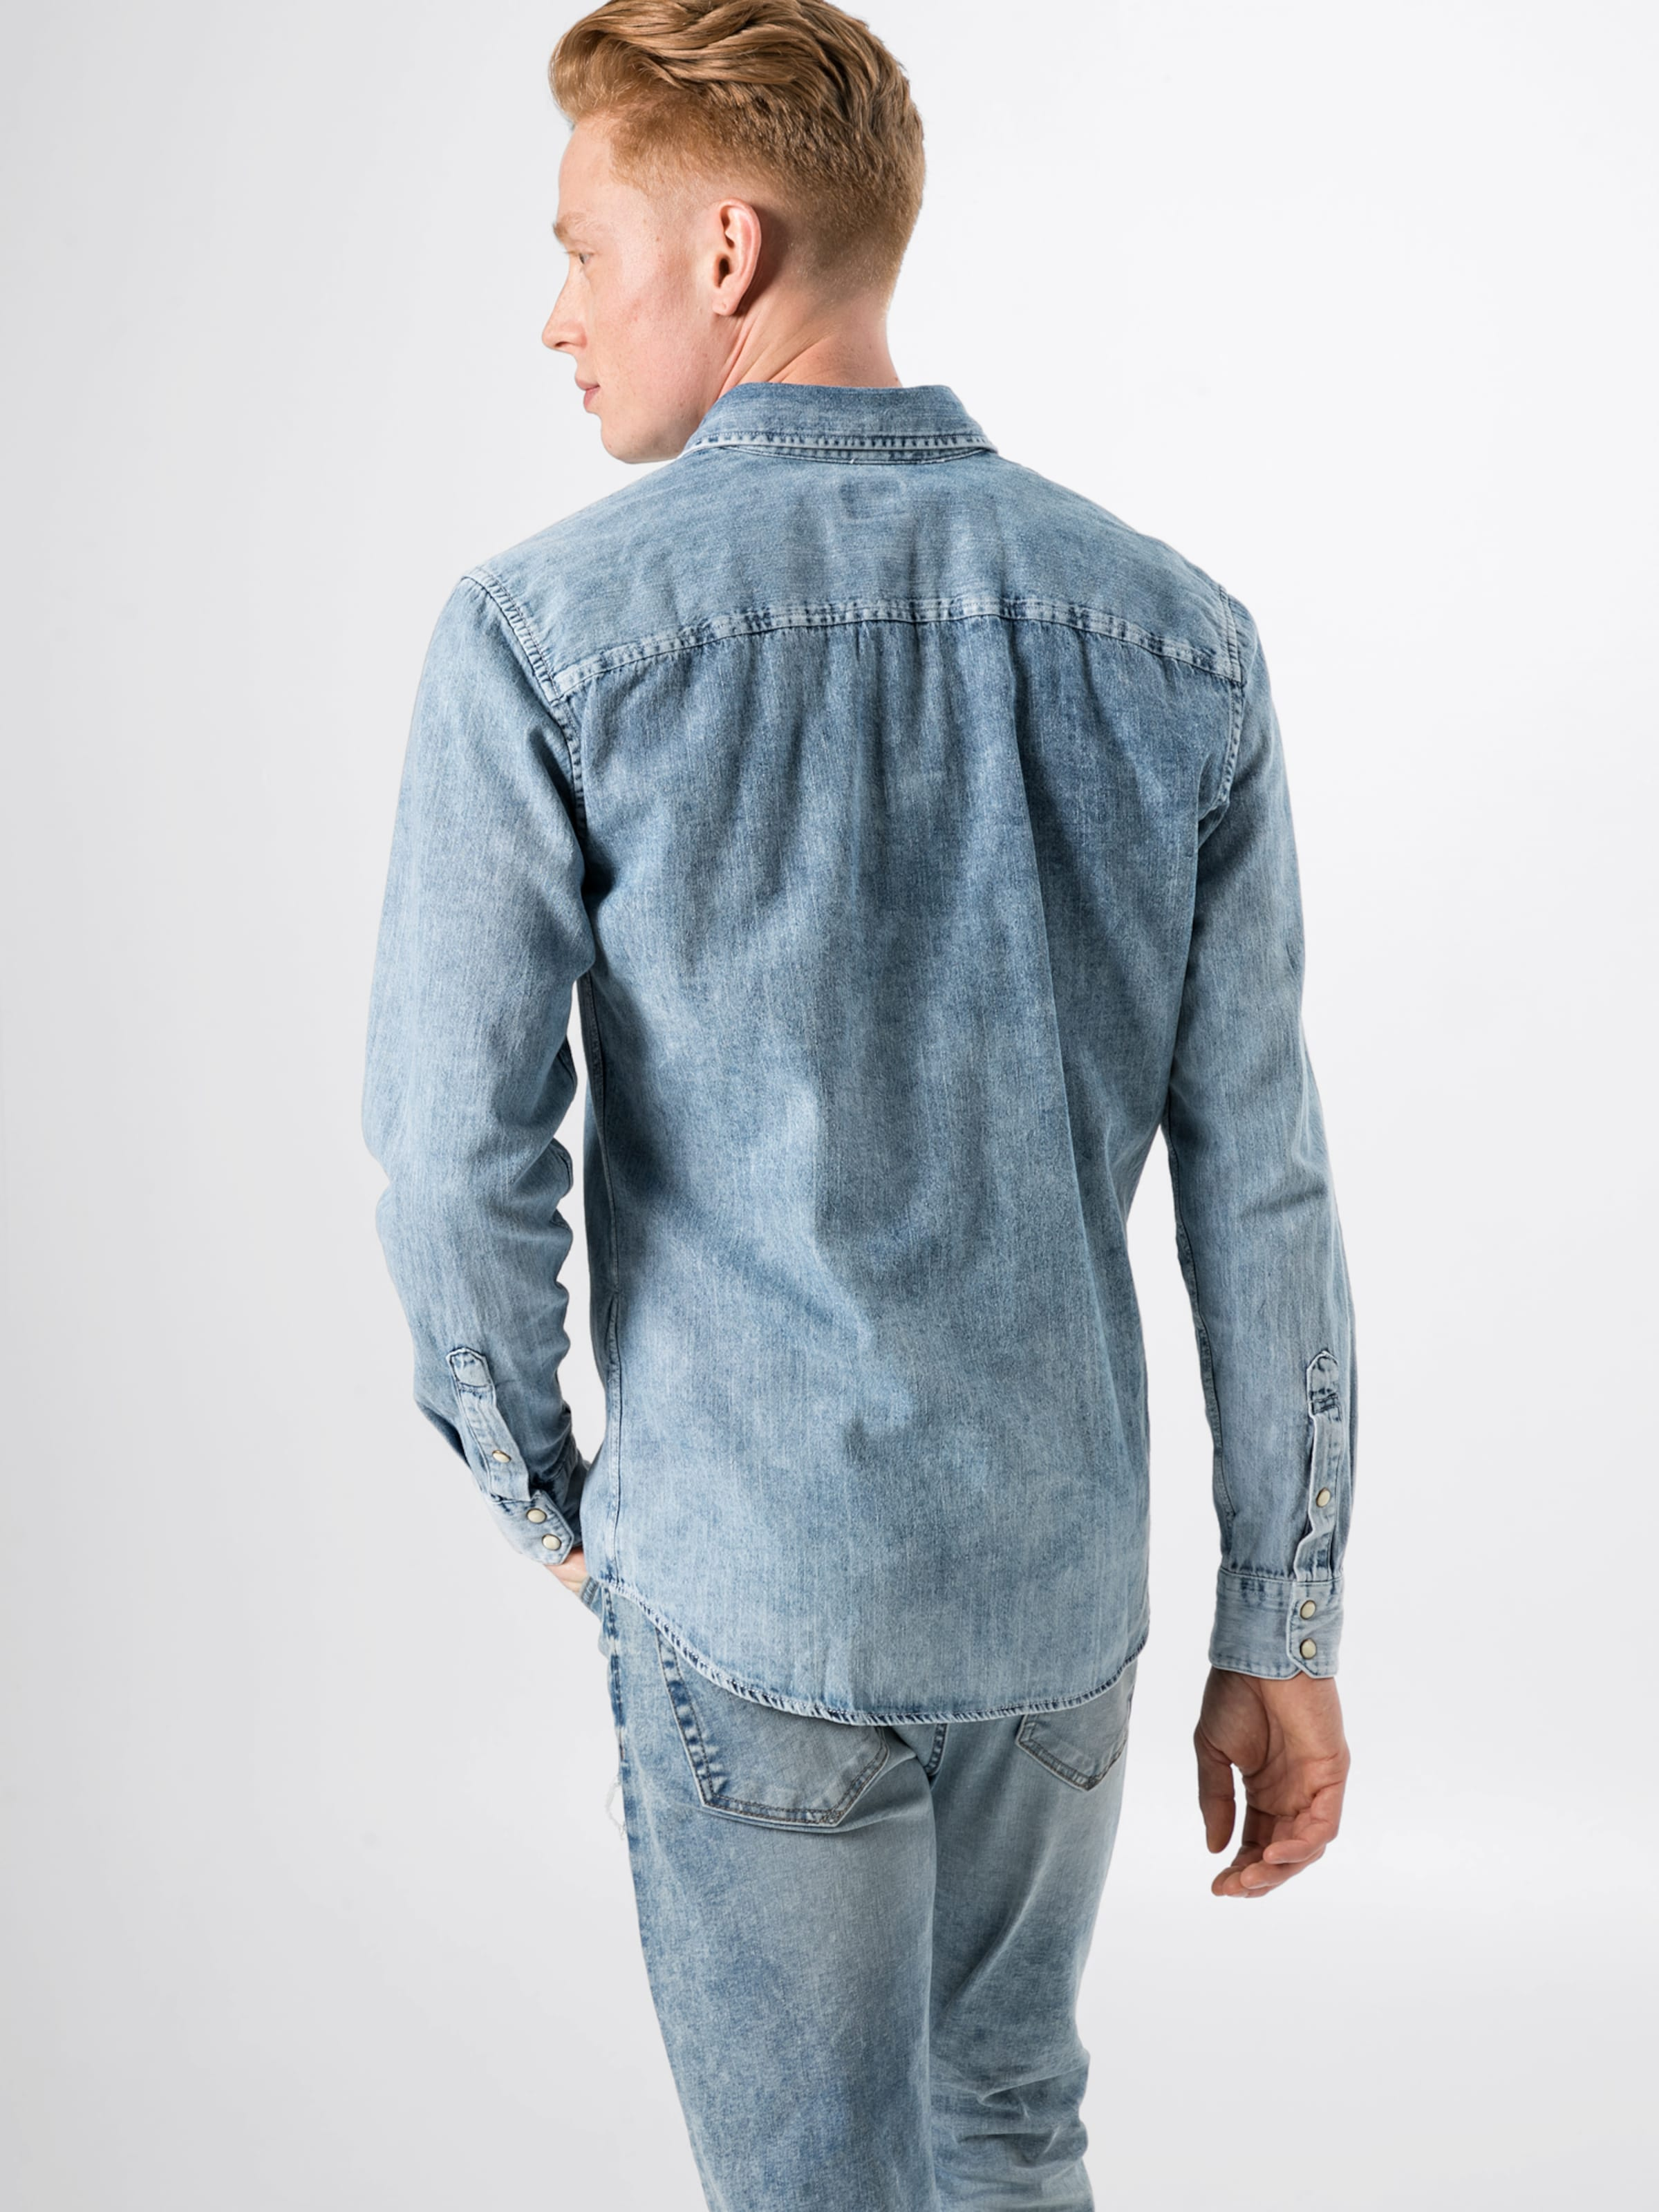 'jjesheridan s' Bleu L Jackamp; En Jones Chemise Shirt Denim w0OPkn